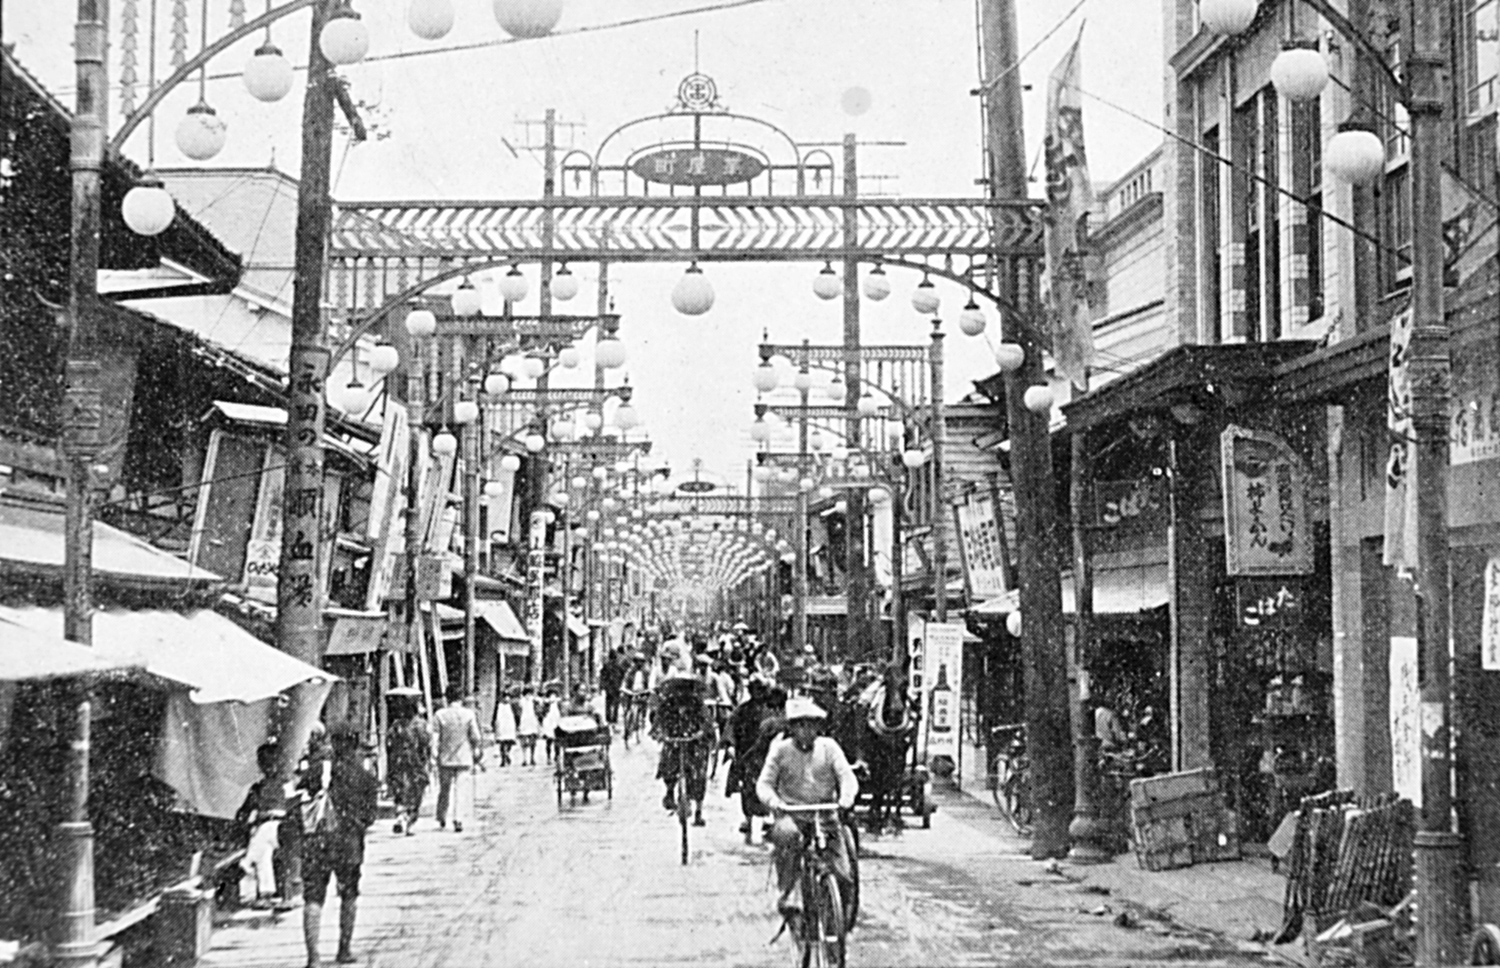 Hiroshima Before And After The Atomic Bombing  The Atlantic  Write For Pay also Help Writing University Assignments  Business Strategy Essay